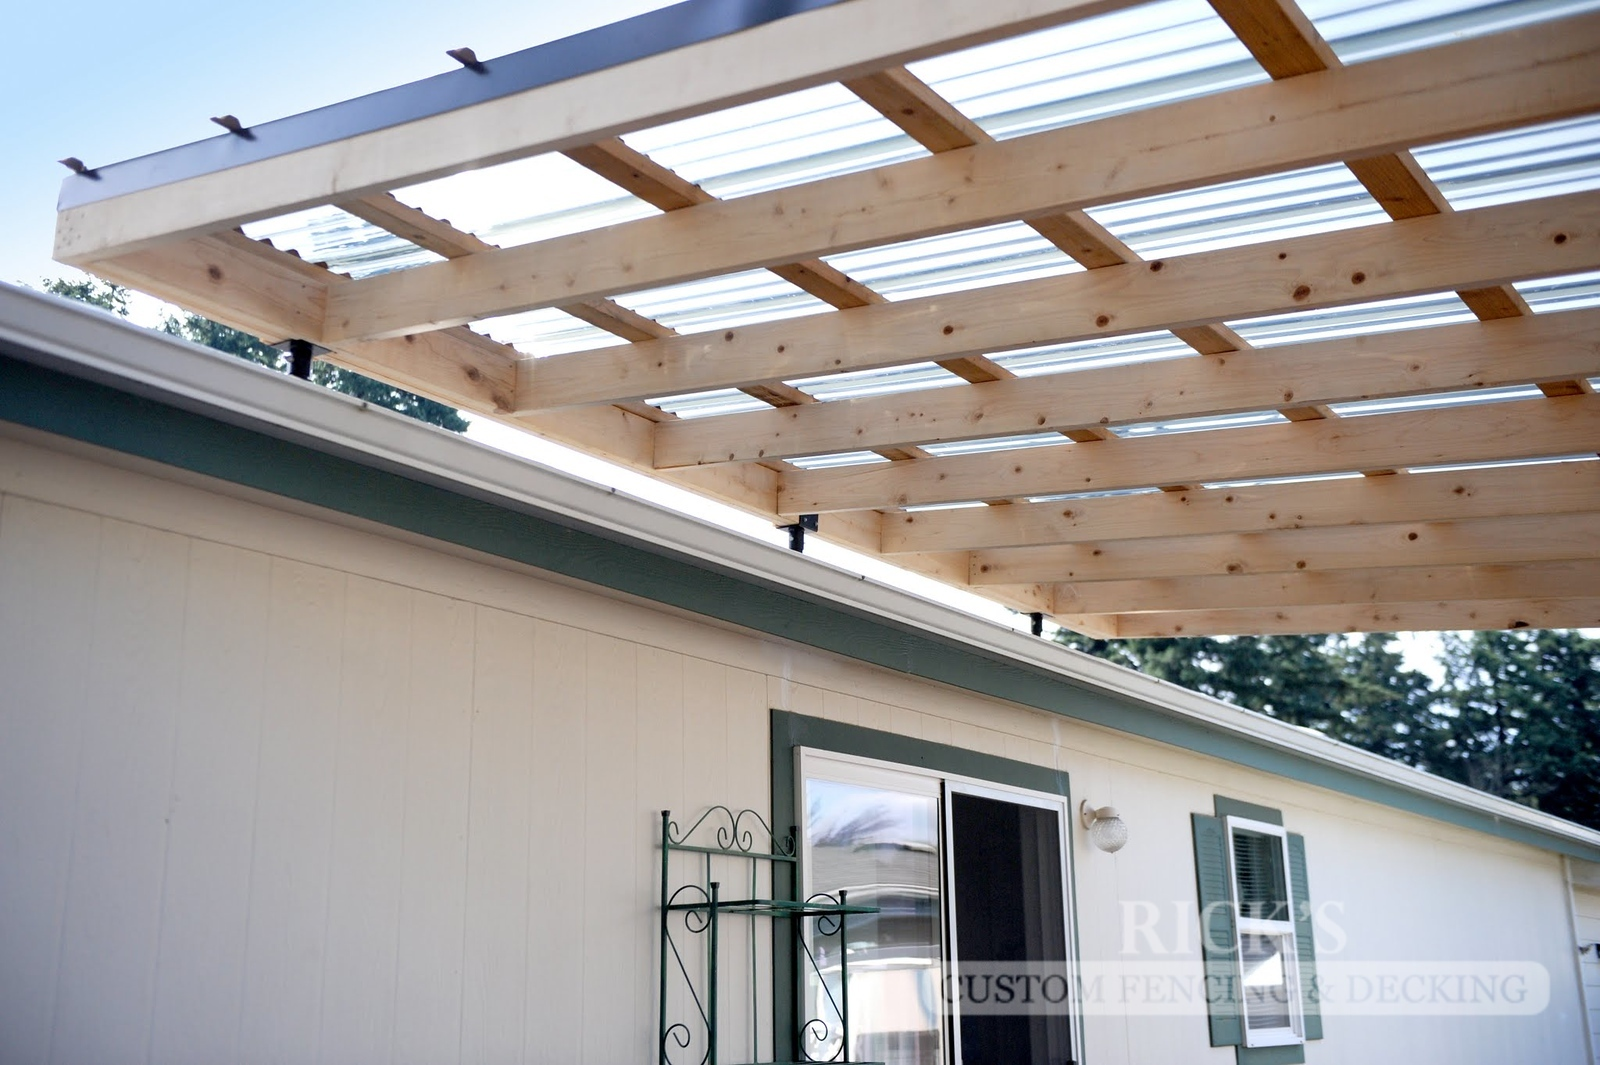 5131 - Wood-Framed Patio Cover with Acrylic Paneling